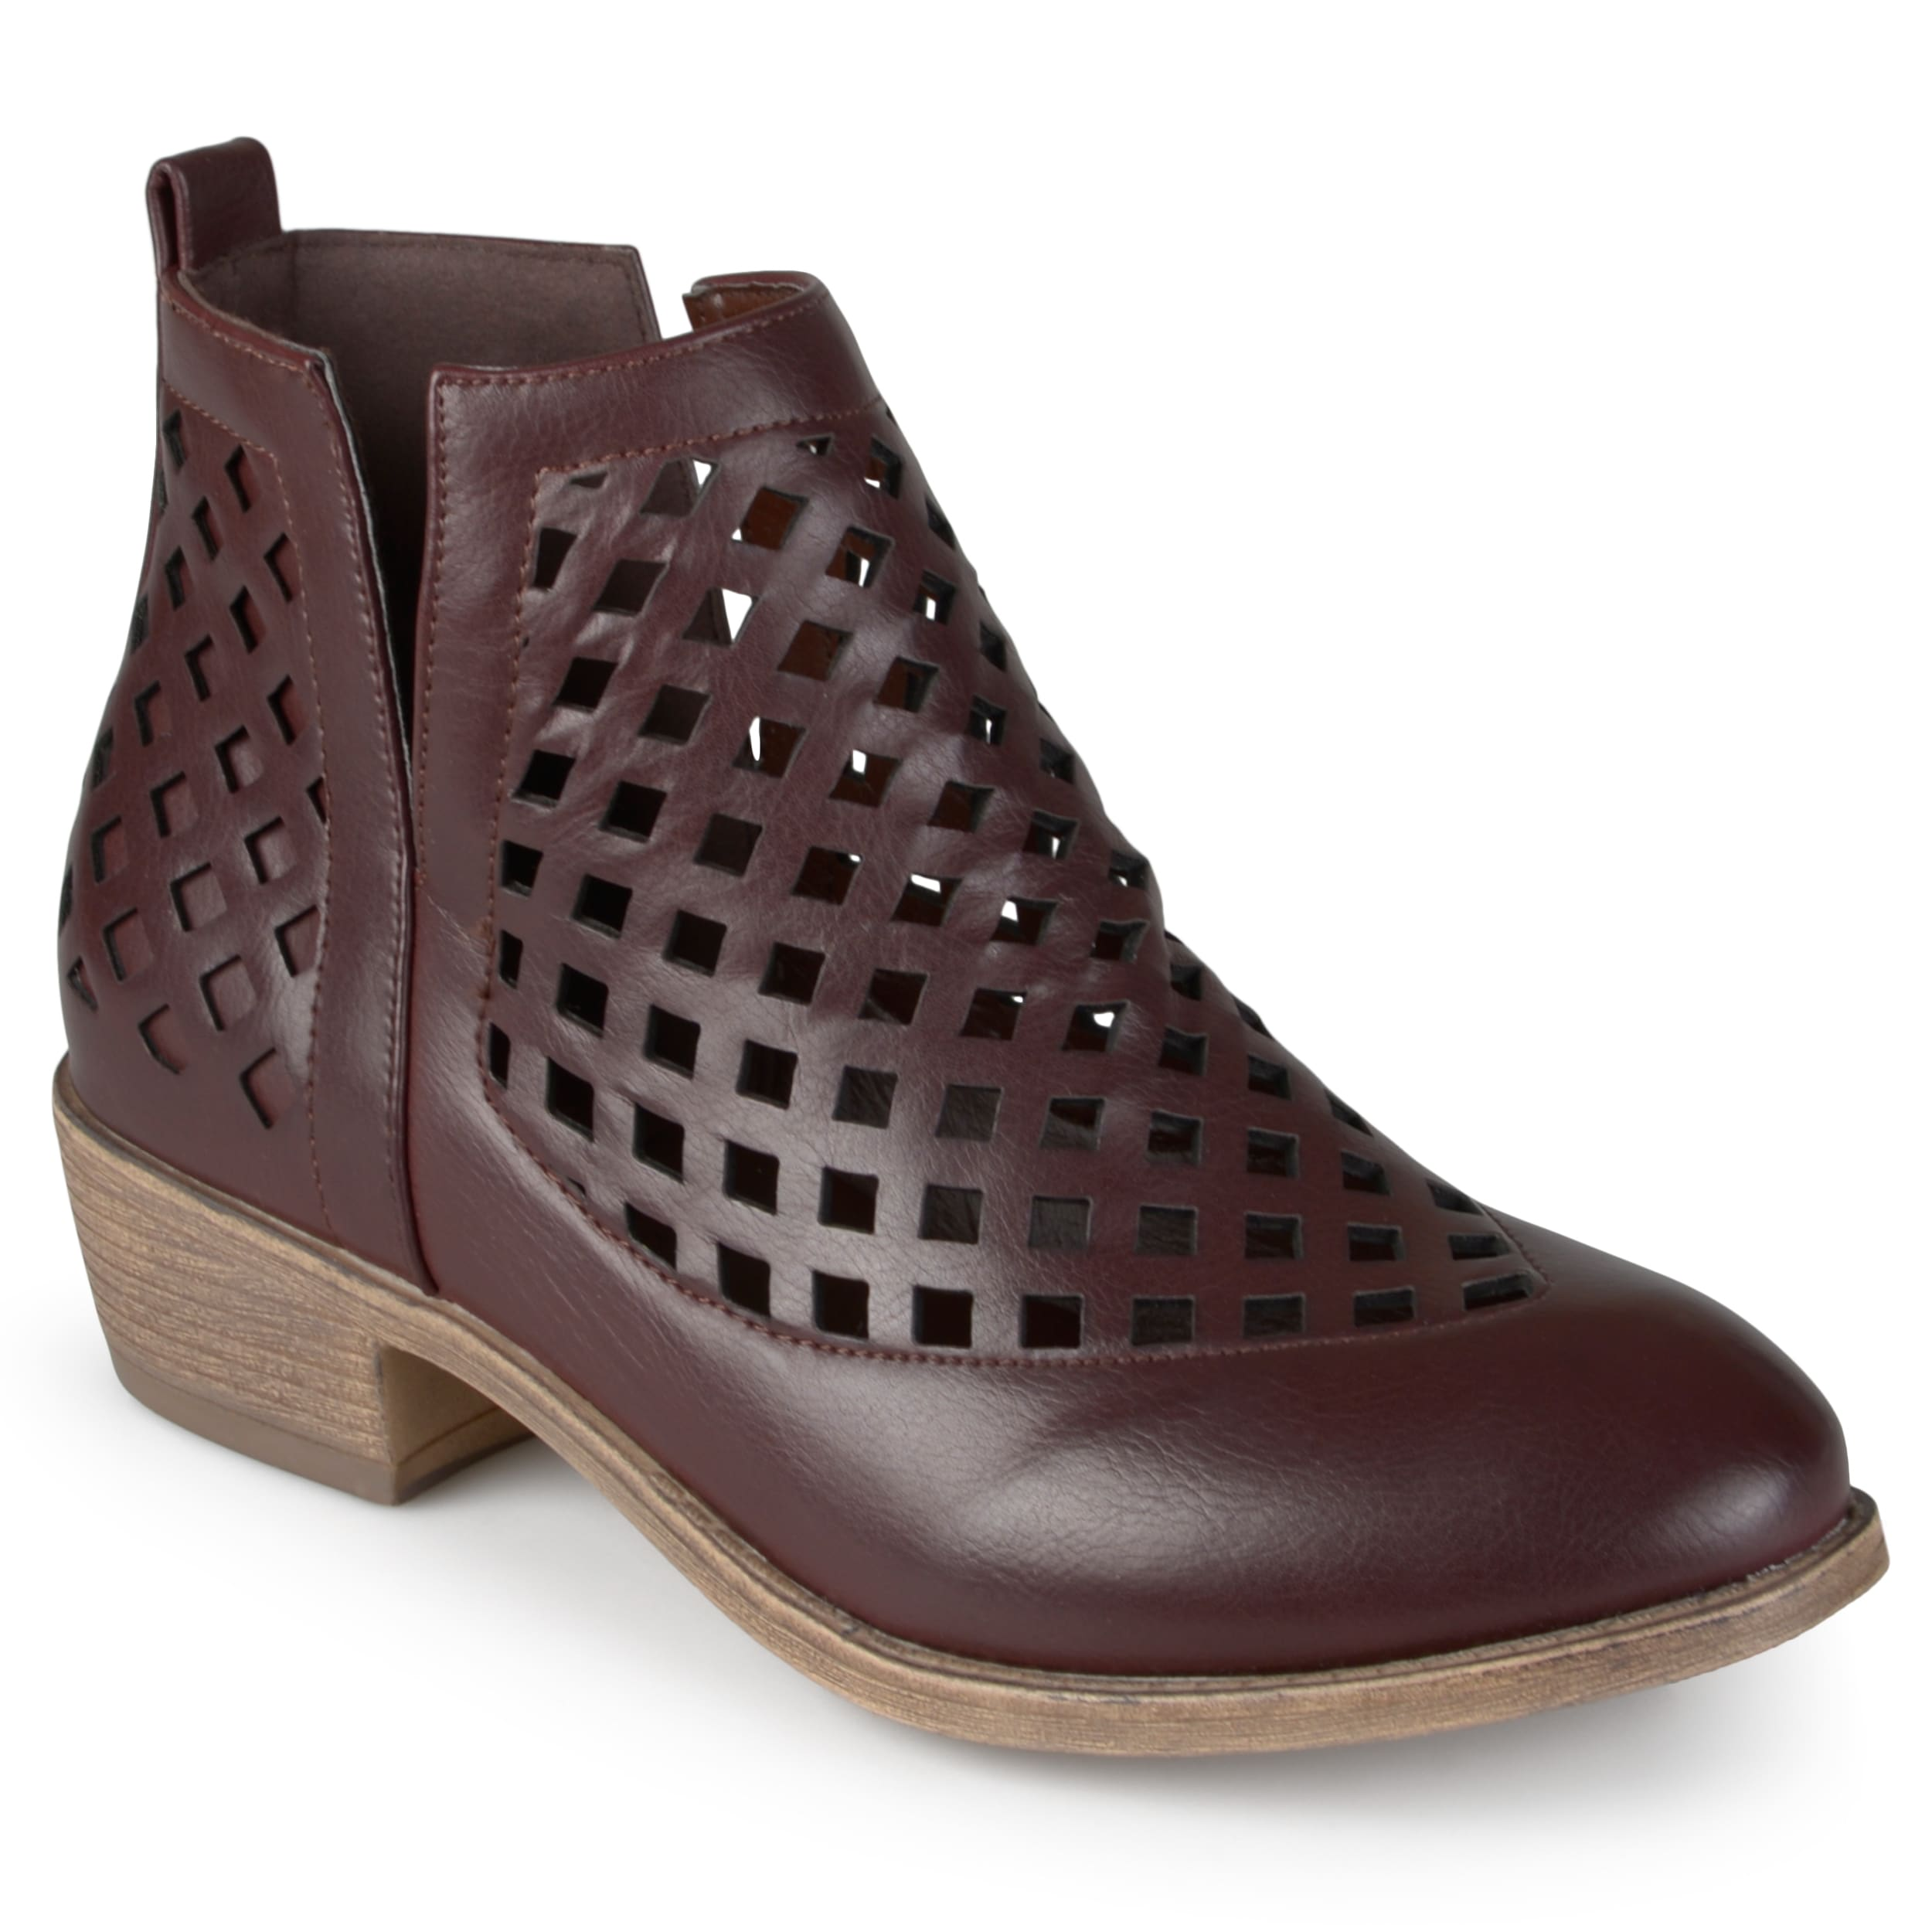 buy cheap great deals Journee Collection Kat Women's ... Ankle Boots fake for sale buy cheap visit latest TAKV8PH2